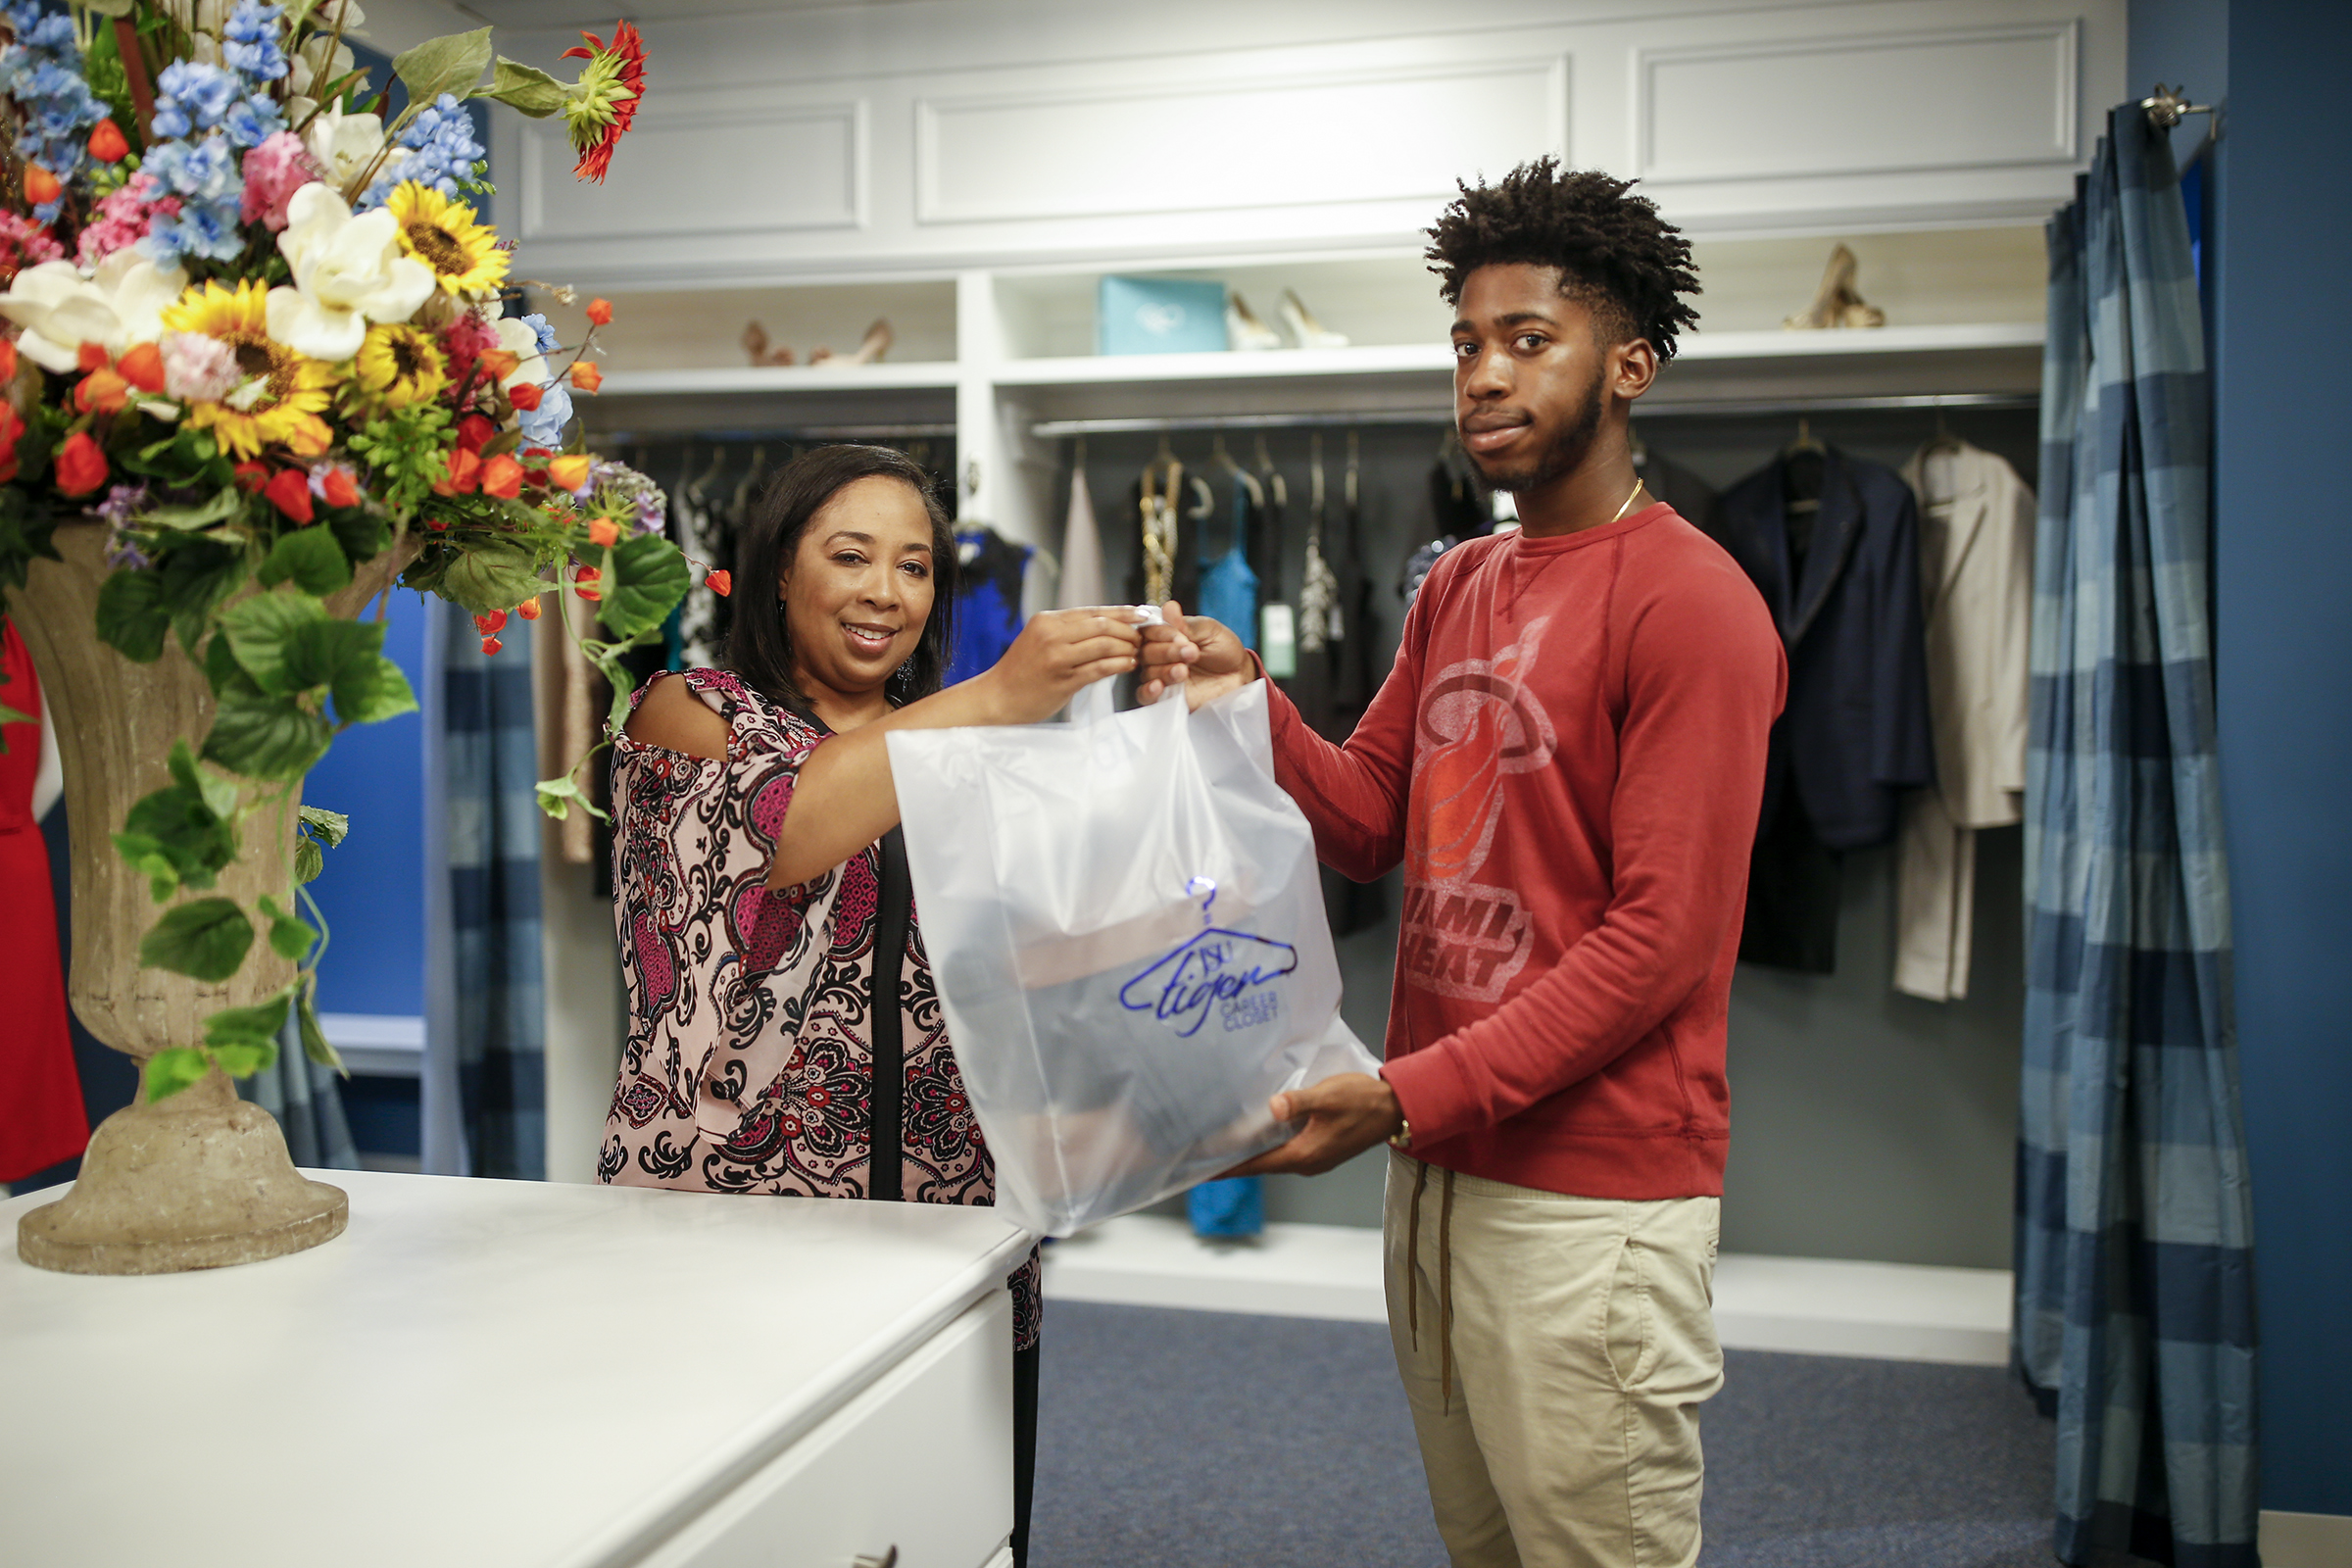 LaShanda Jordan JSU Executive Director Career Services Center gives Patrick Eldria, a sophomore business major his shopping bag filled with professional attire.